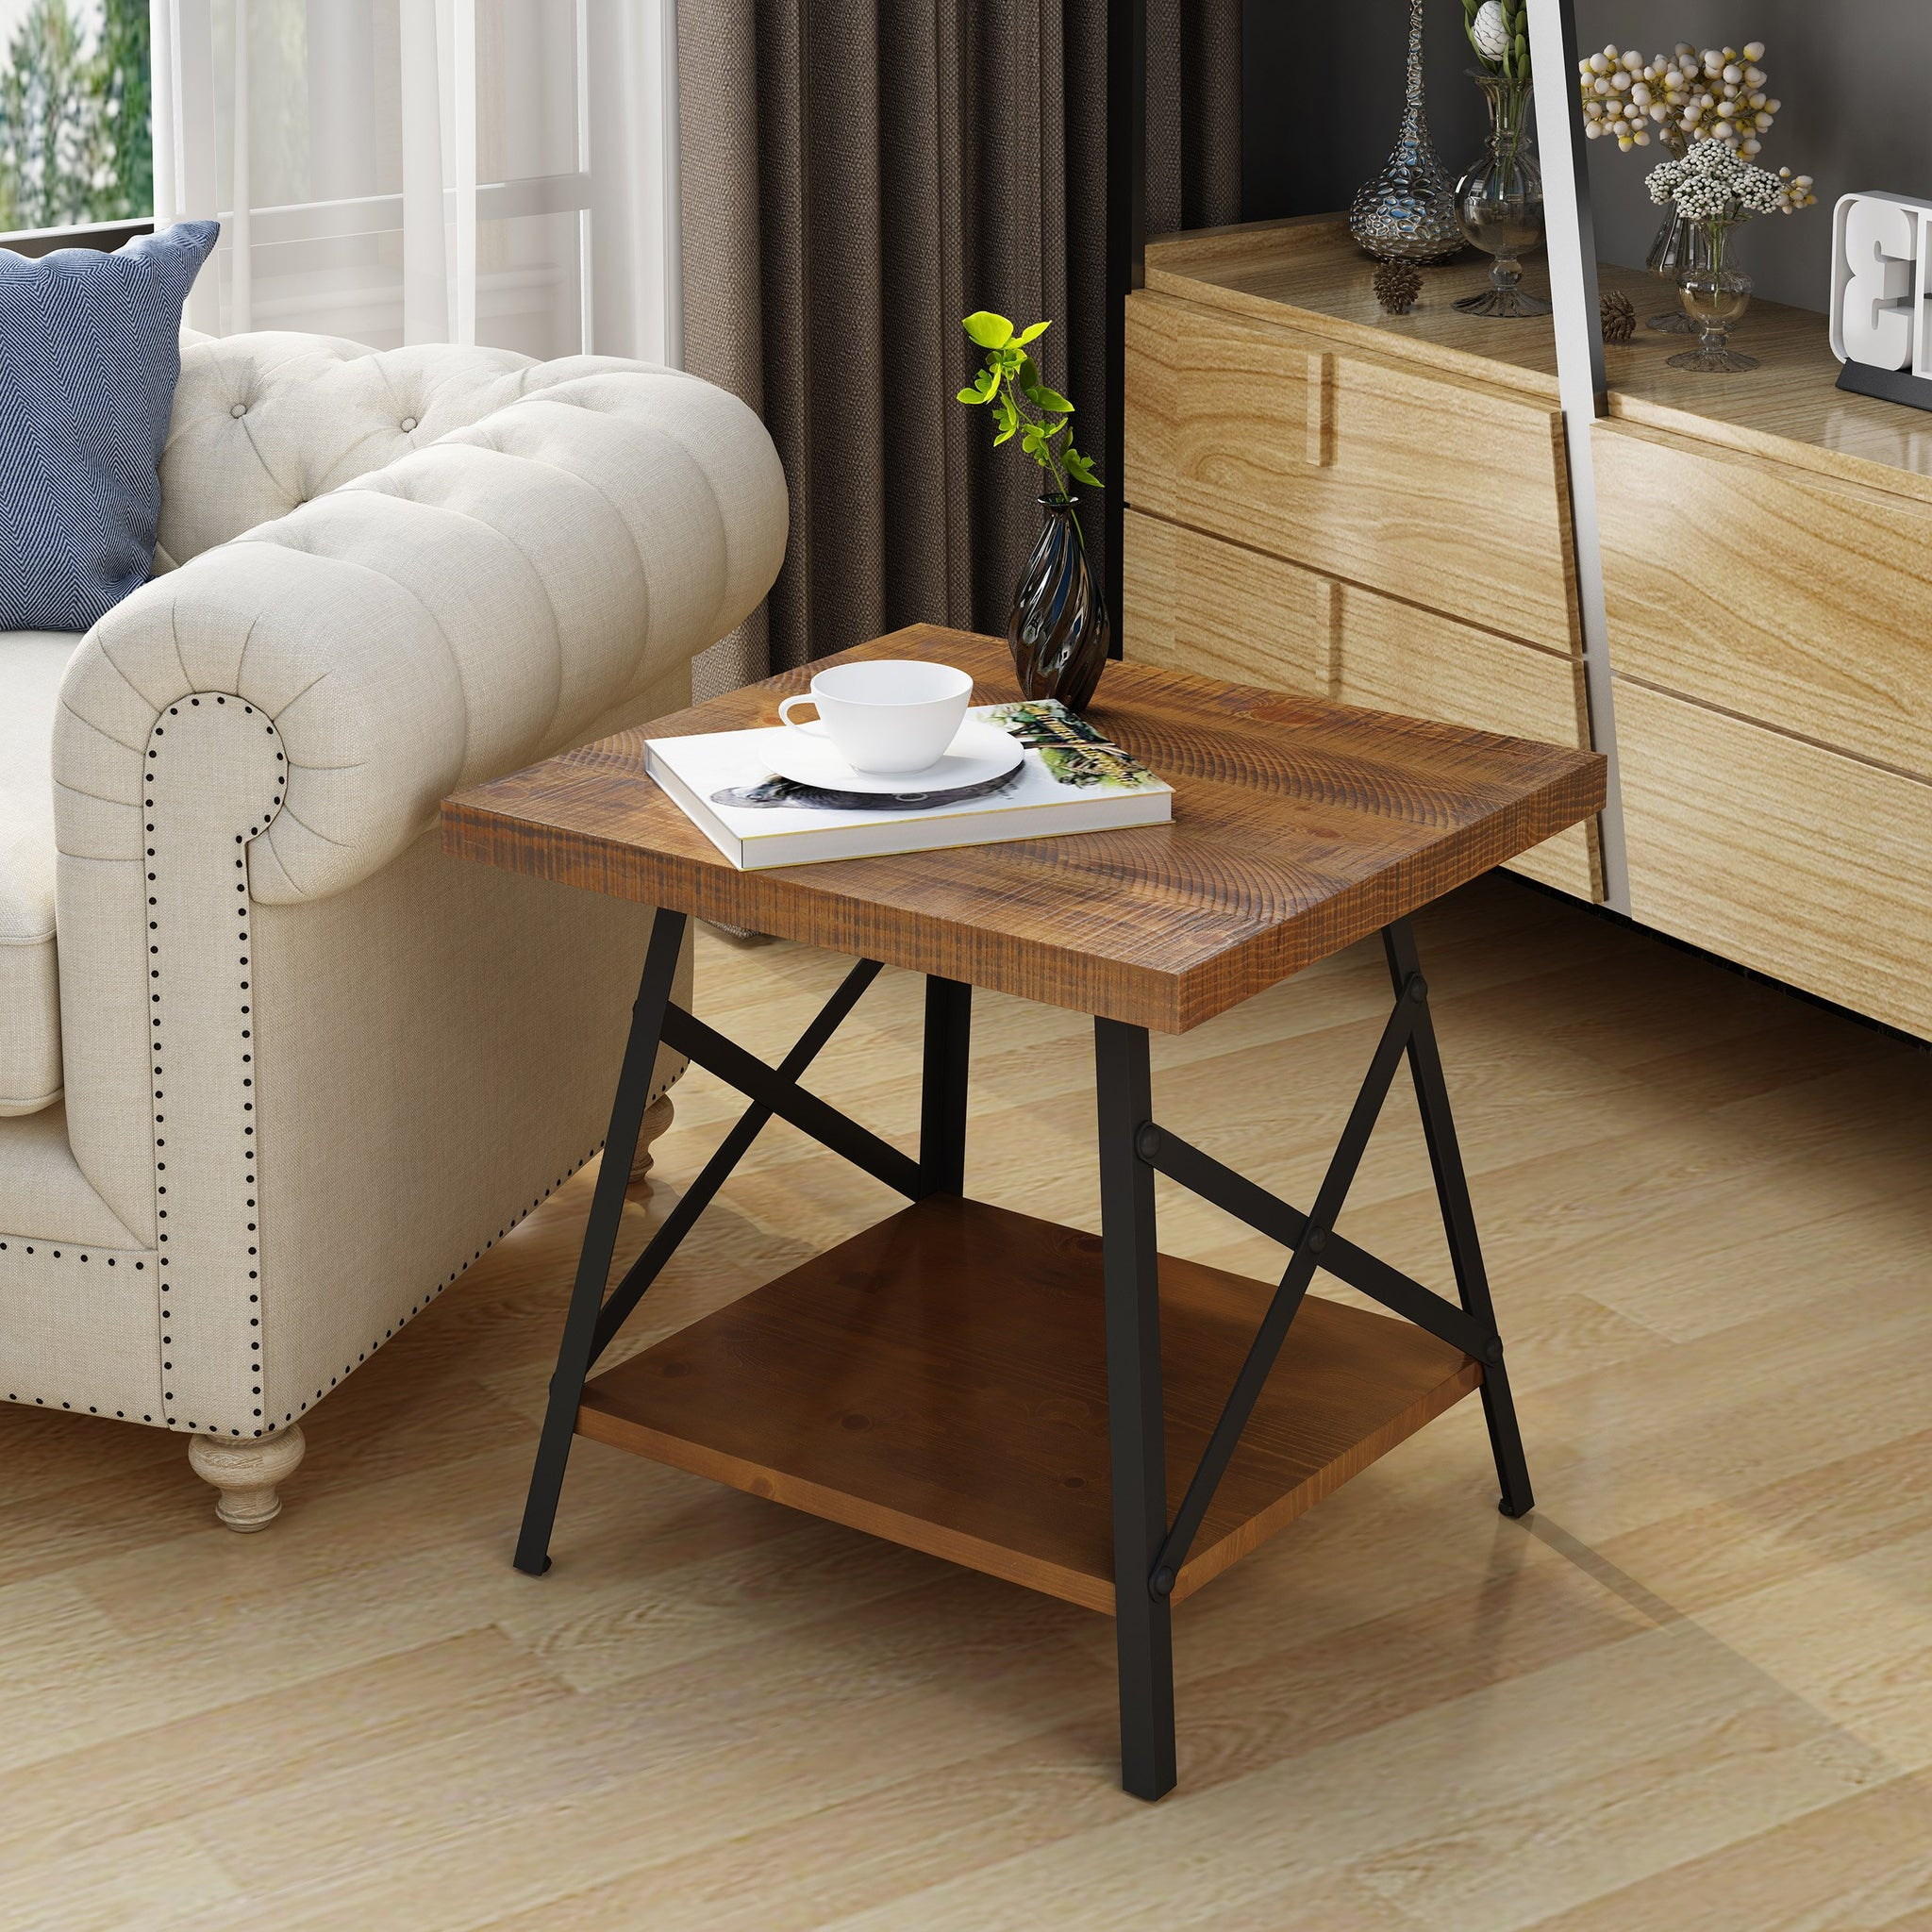 Calliope Industrial Natural Finish Faux Wood End Table